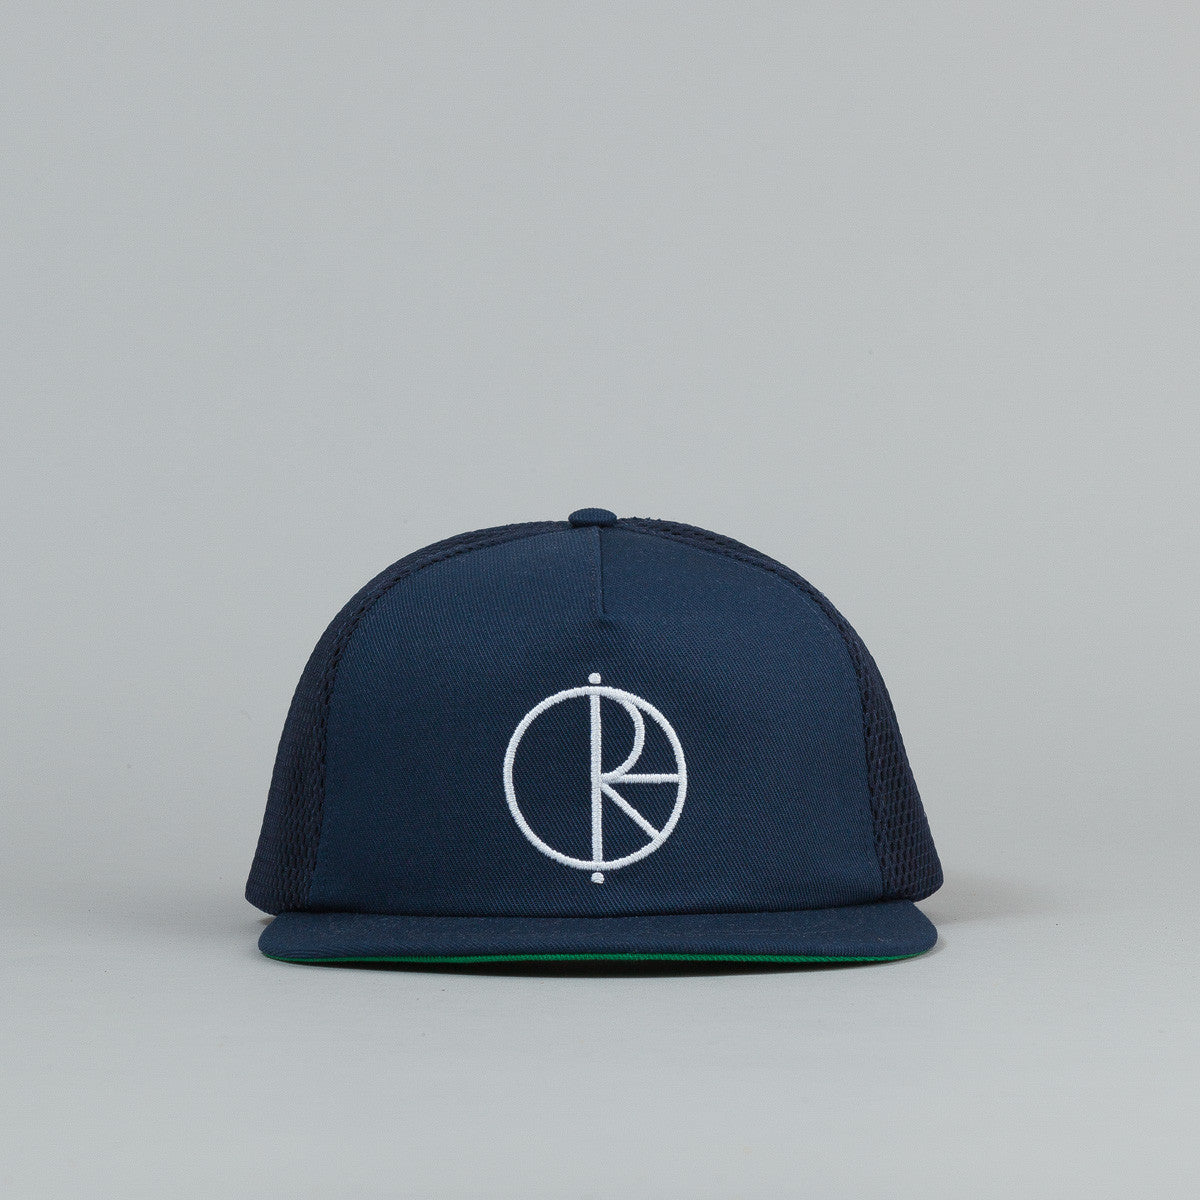 Polar Trucker Snapback Cap Navy / Green Bottom Brim